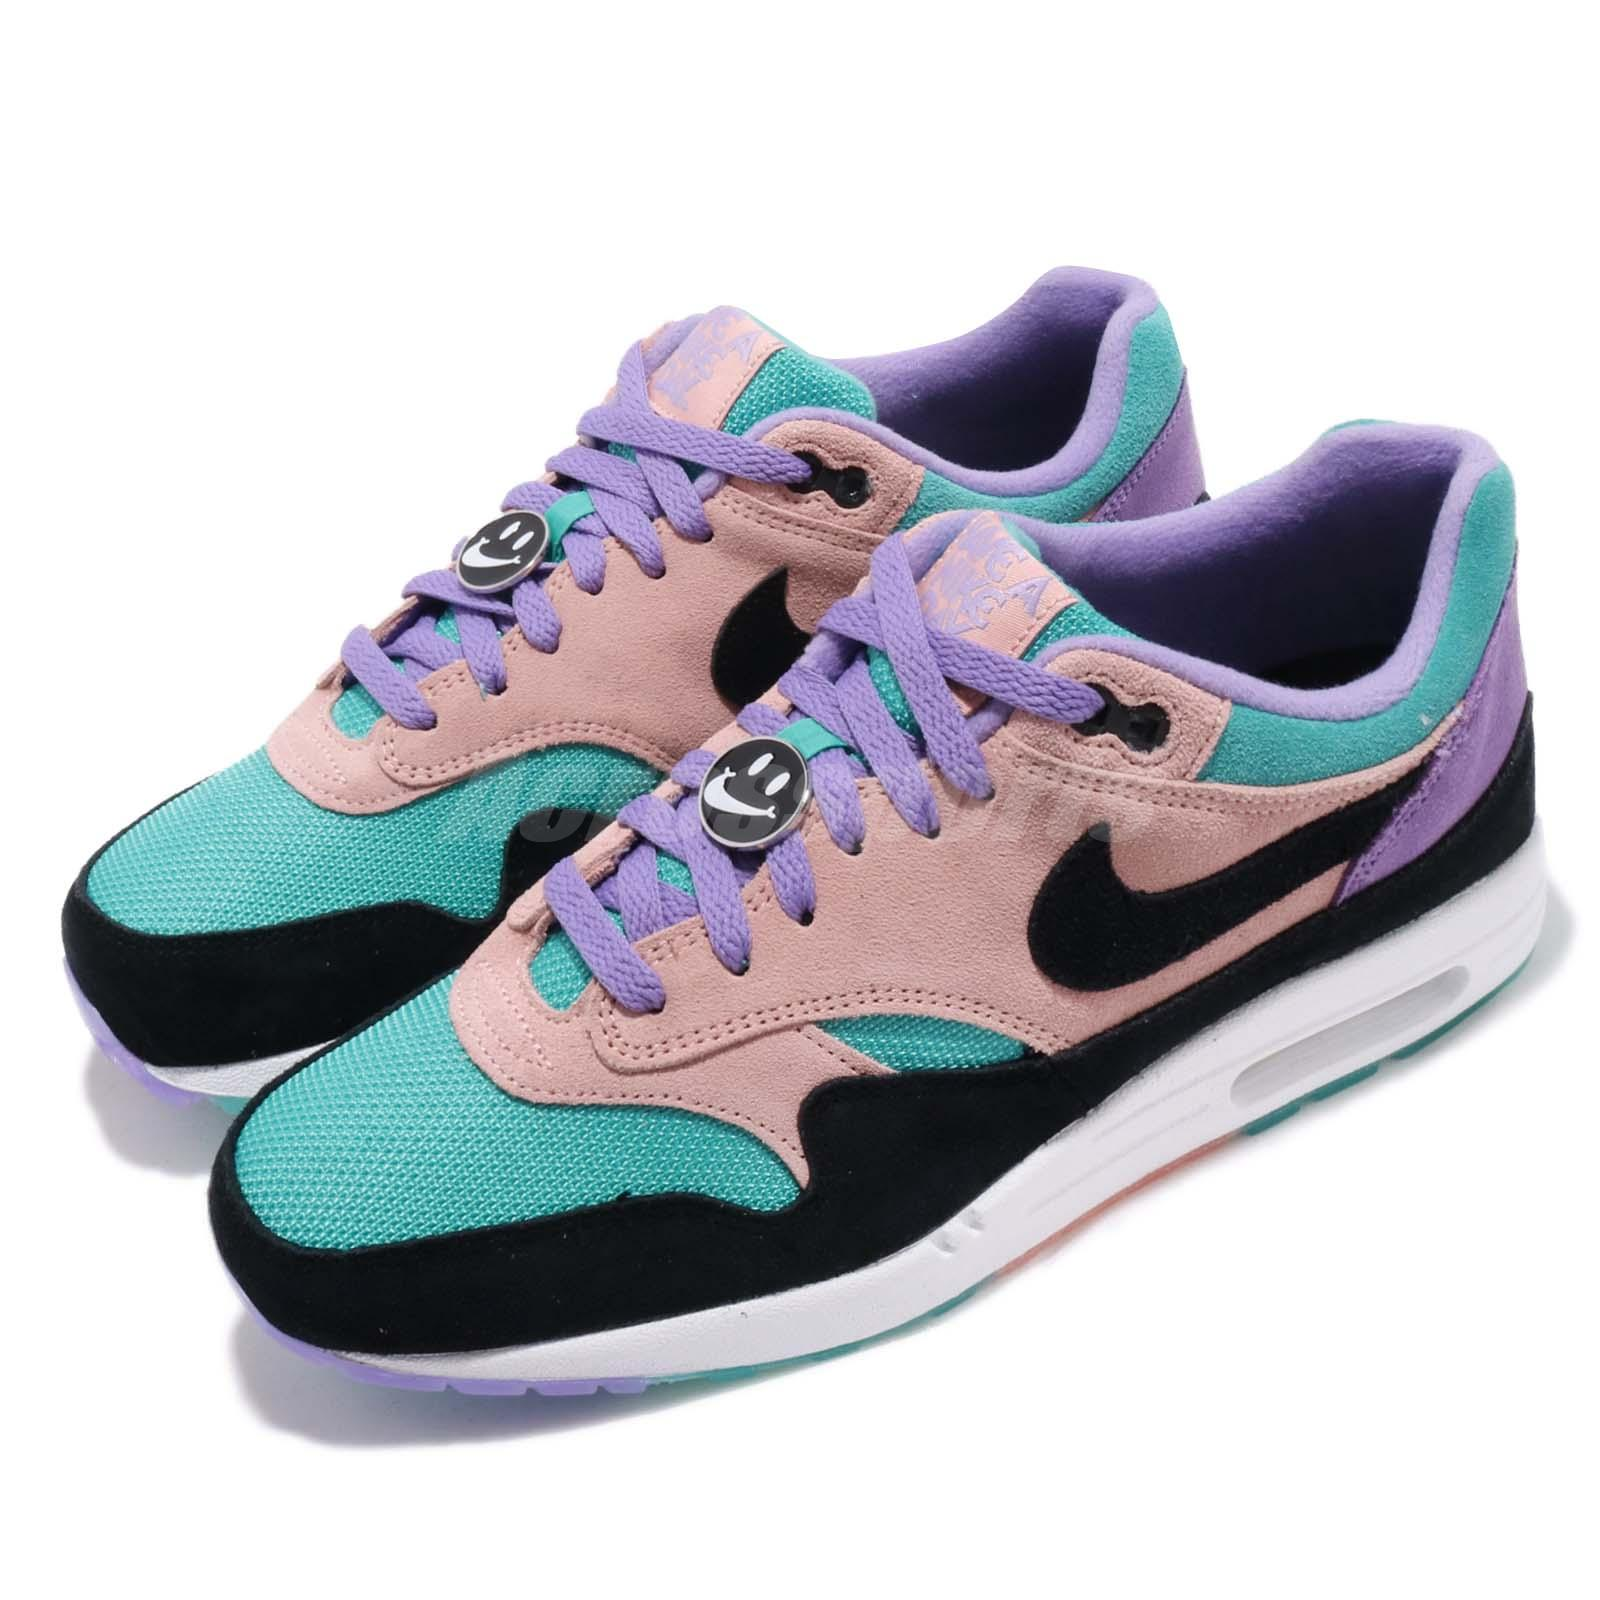 Nike Air Max 1 Nd Size 10 Bq8929 500 Have A Nike Da